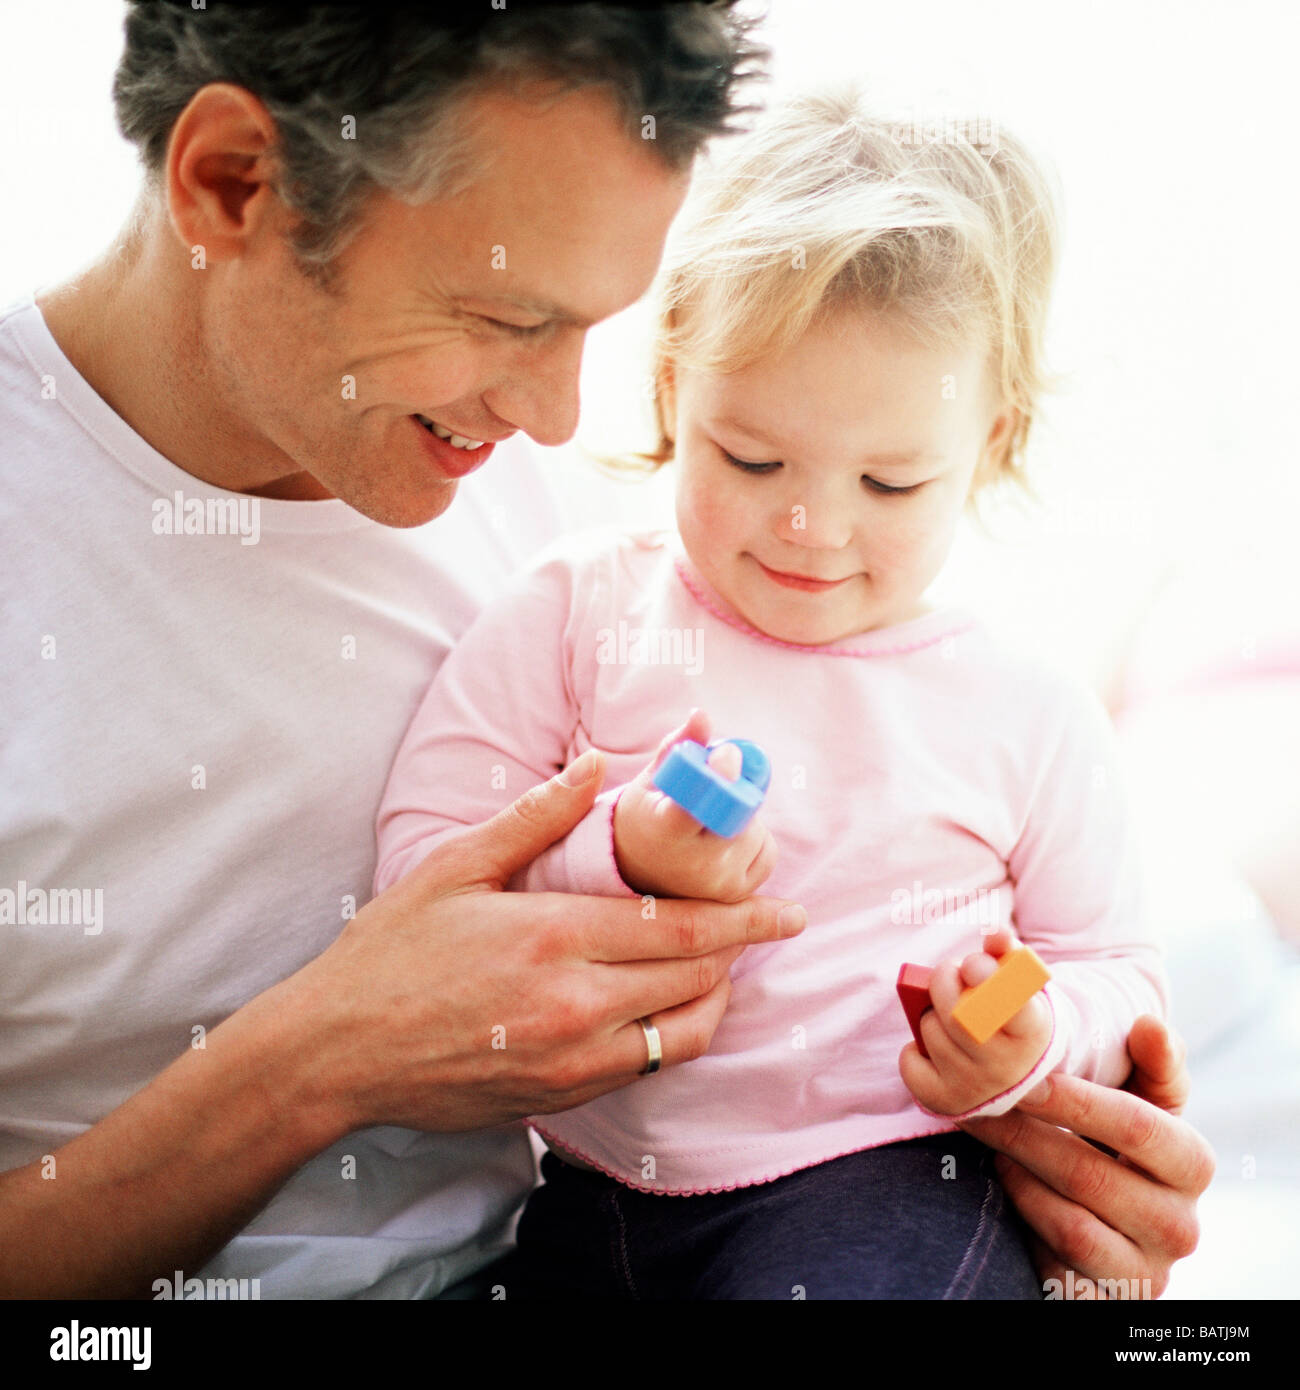 Fatherhood. Father playing with his one year old daughter while holding her on his lap. - Stock Image